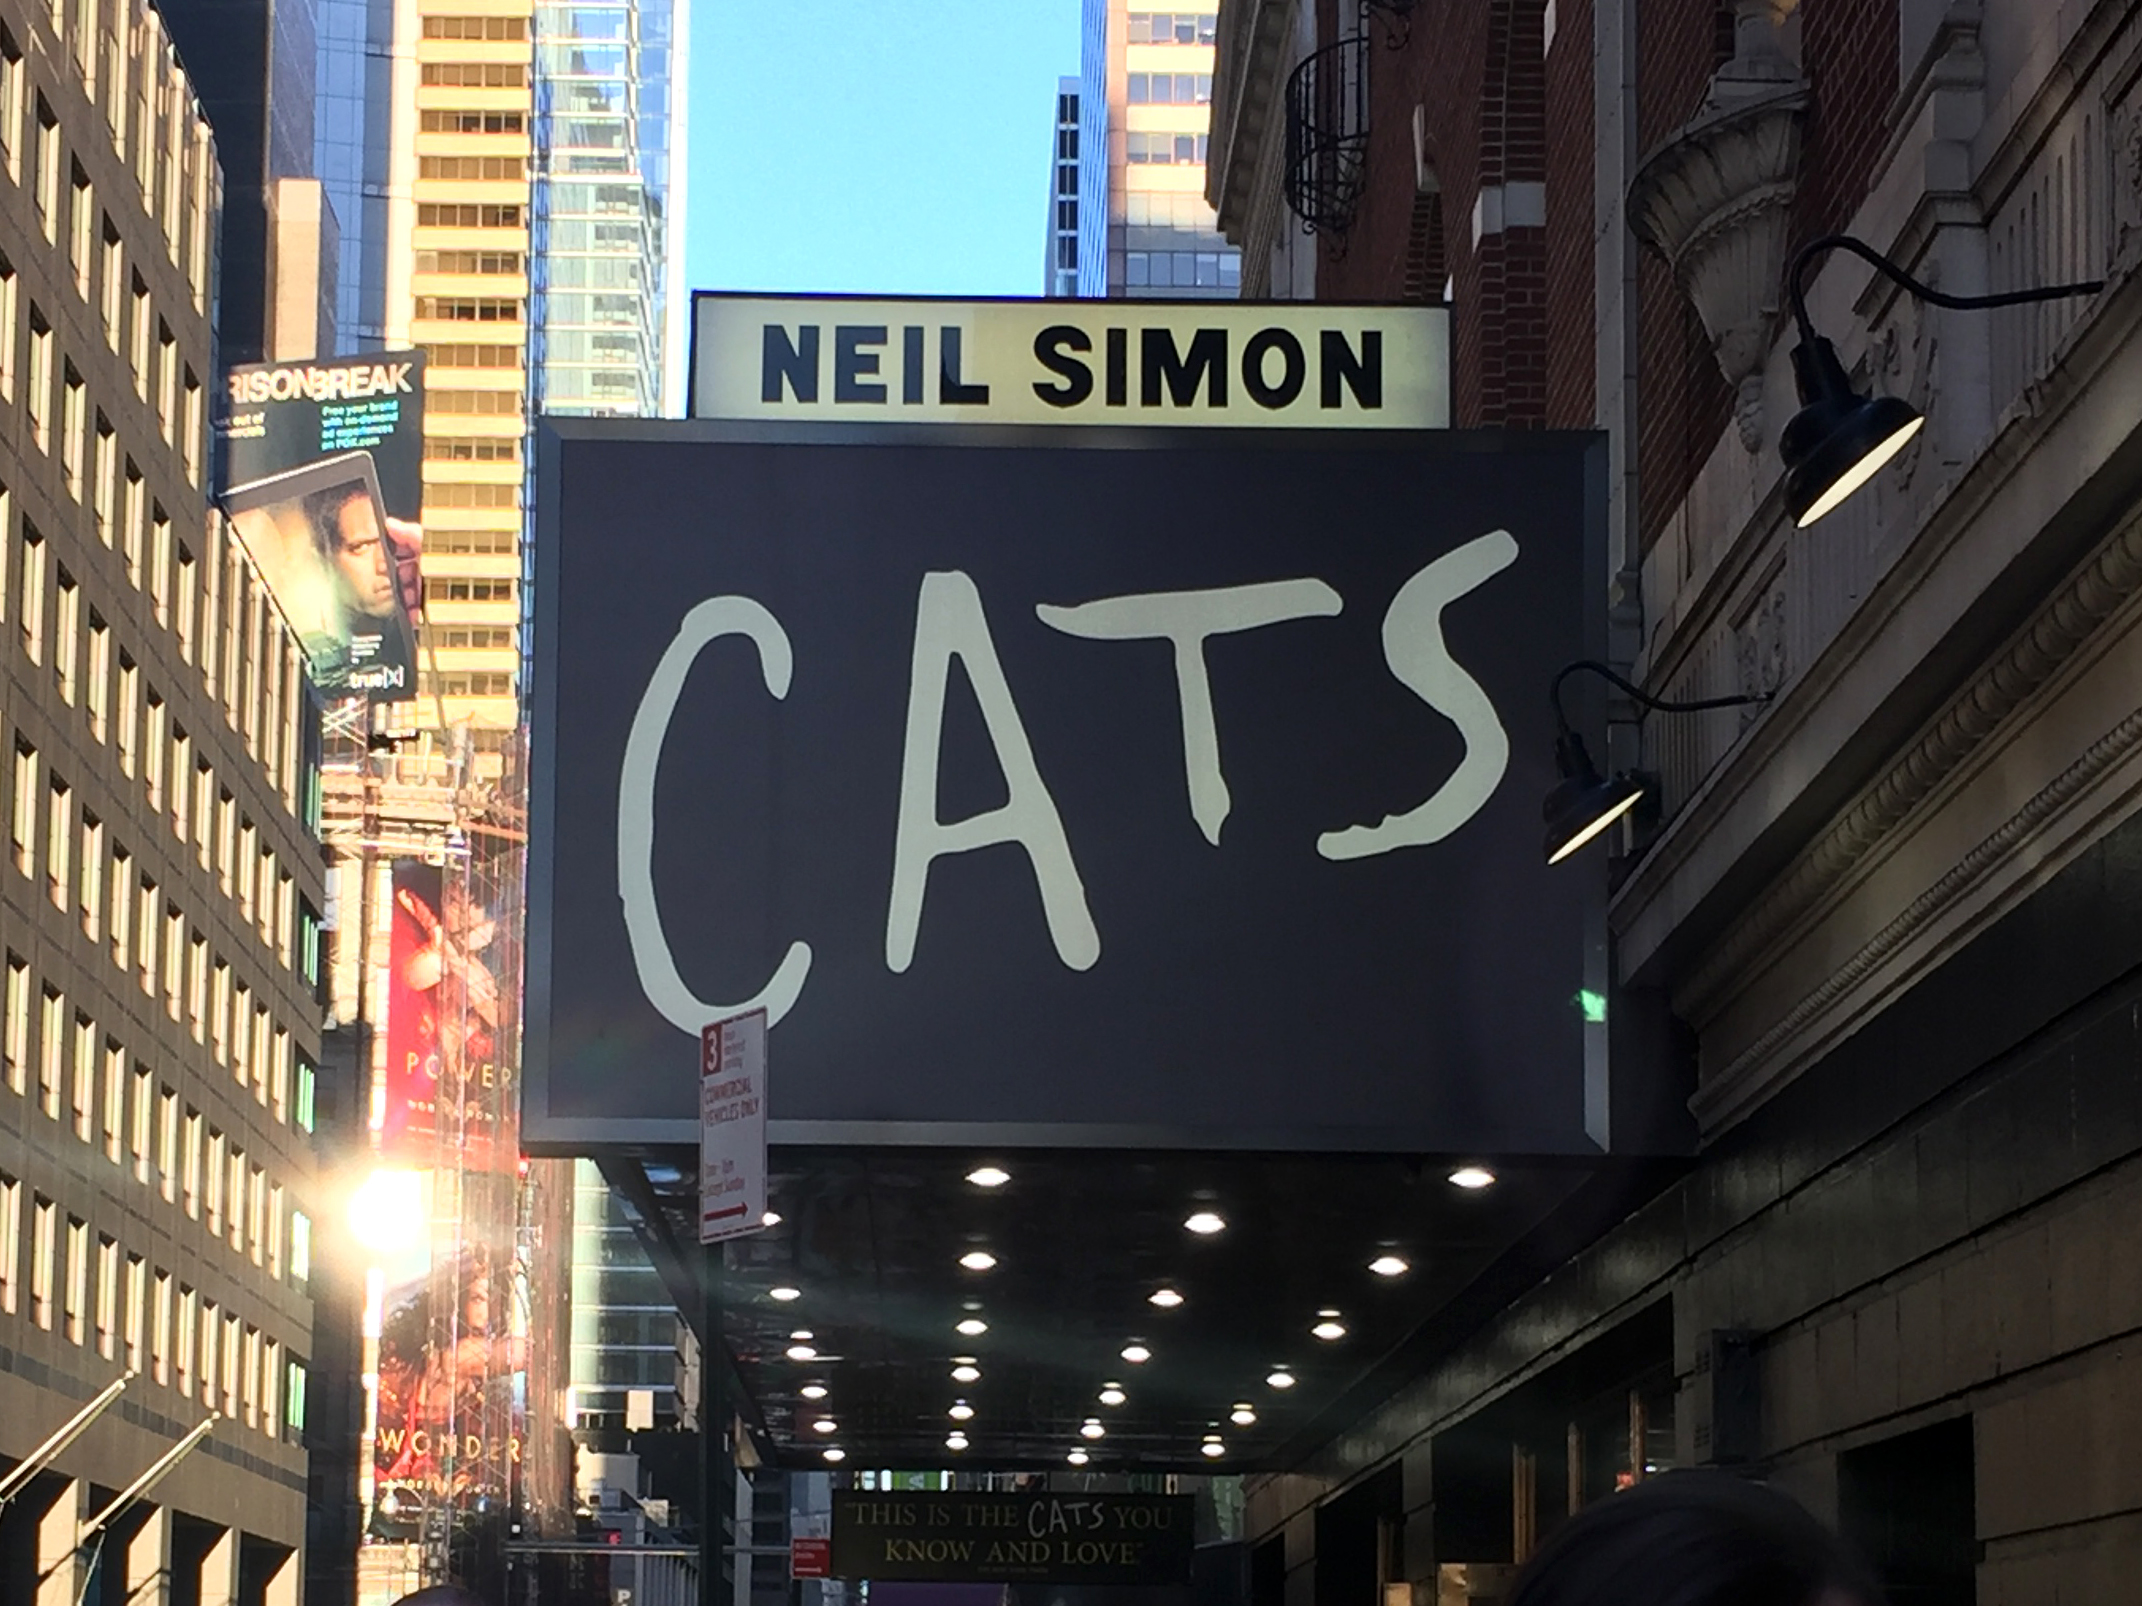 Cats in Neil Simon Theatre 2017.